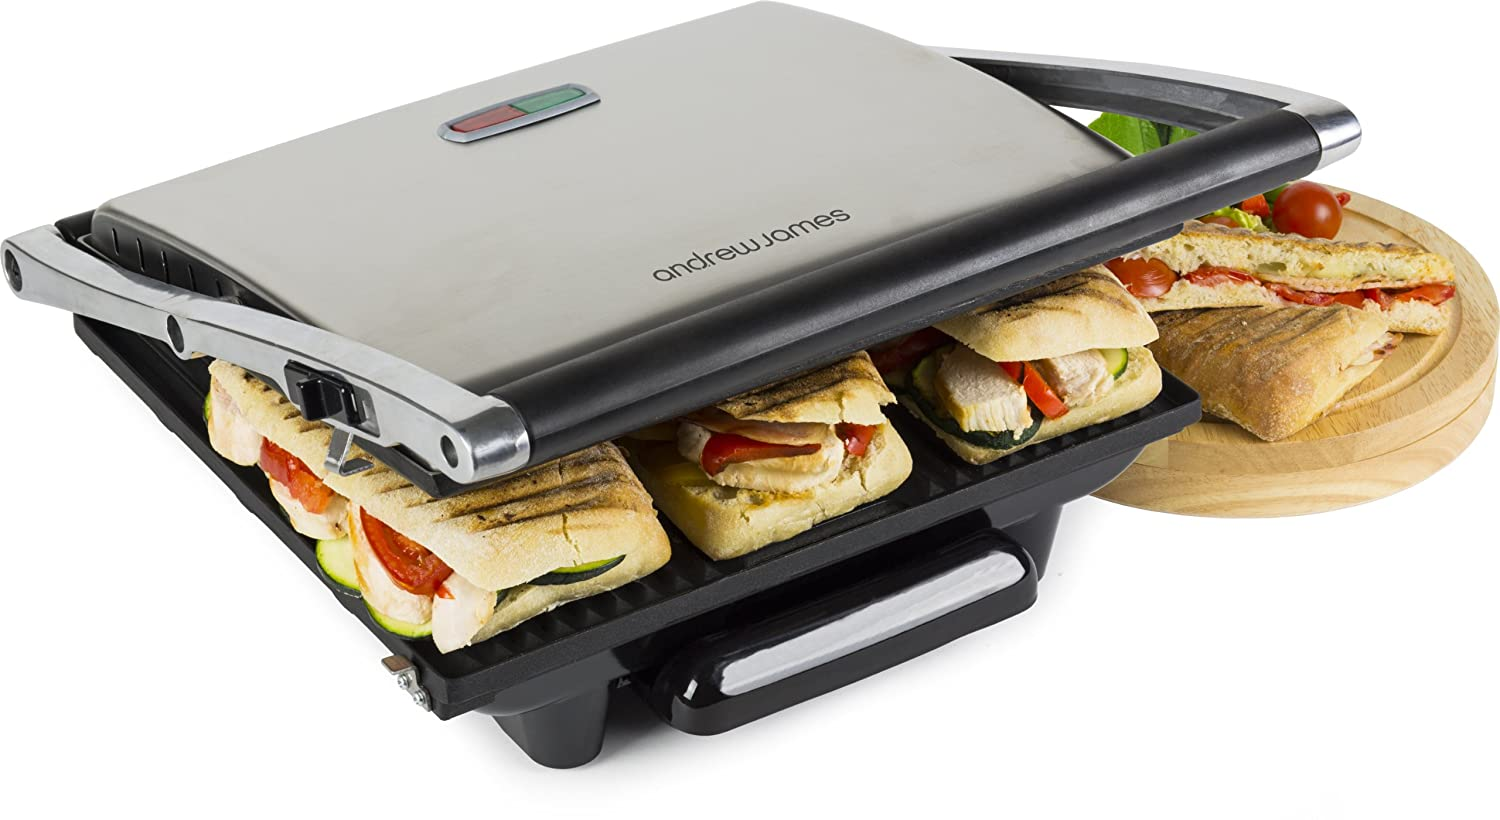 The Andrew James Panini Sandwich Press costs just under £30 and could be an excellent addition to your kitchen.